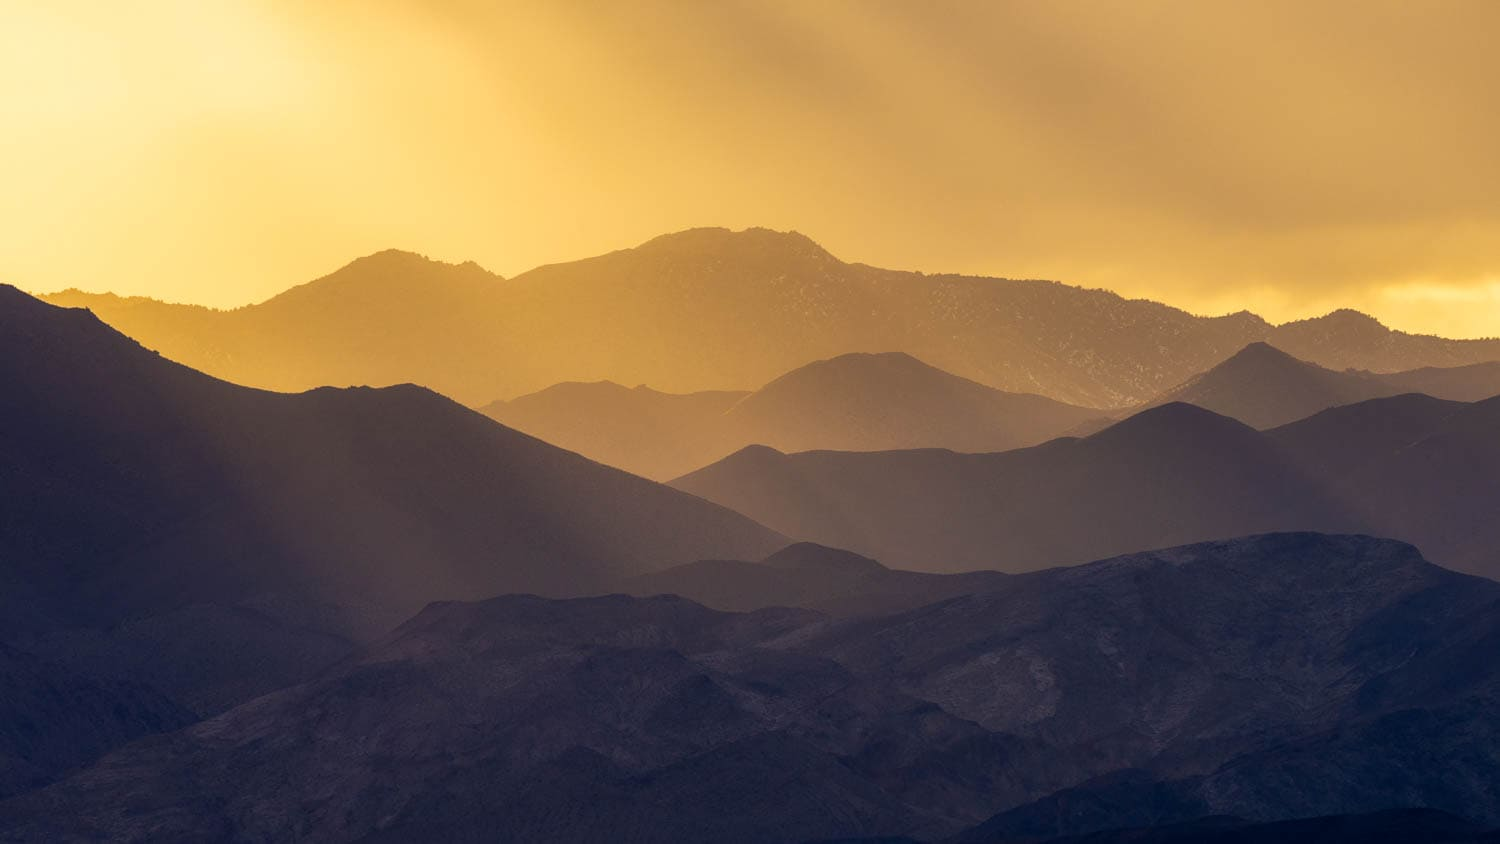 Golden light over layered mountains